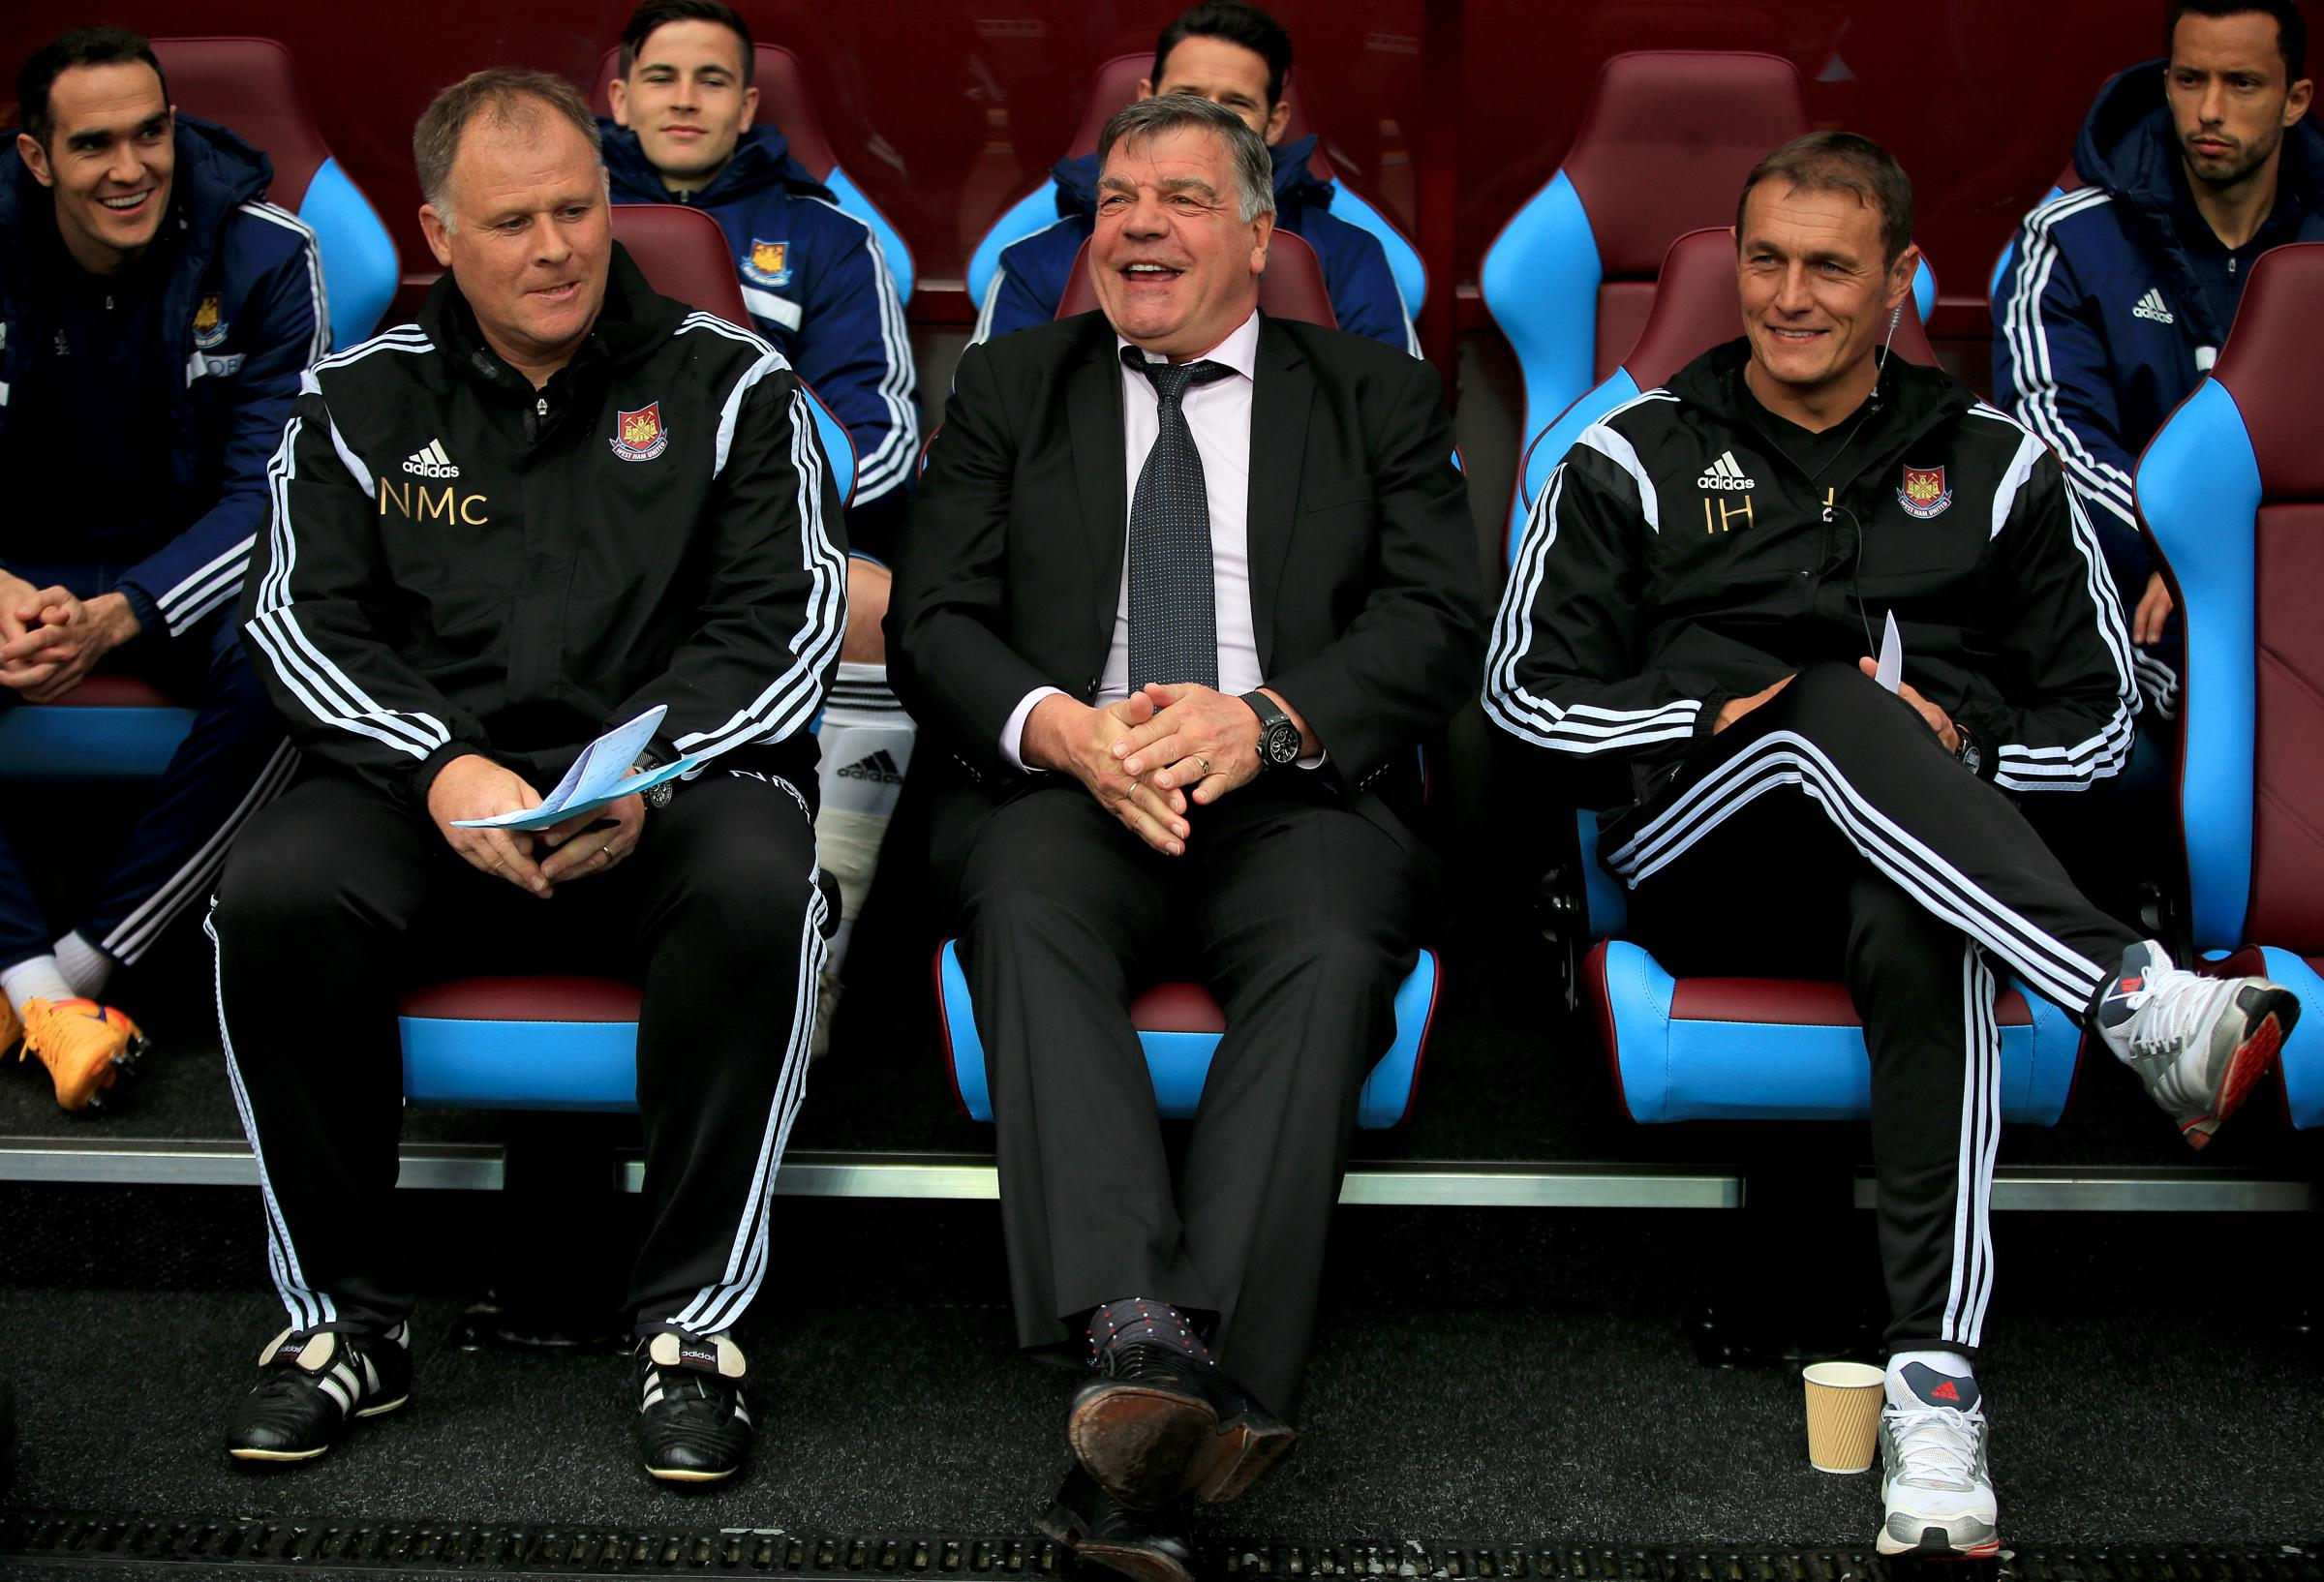 PICTURED: West Ham United manager Sam Allardyce (centre) with assistant Neil McDonald (left) and first-team coach Ian Hendon before a Premier League match at Villa Park